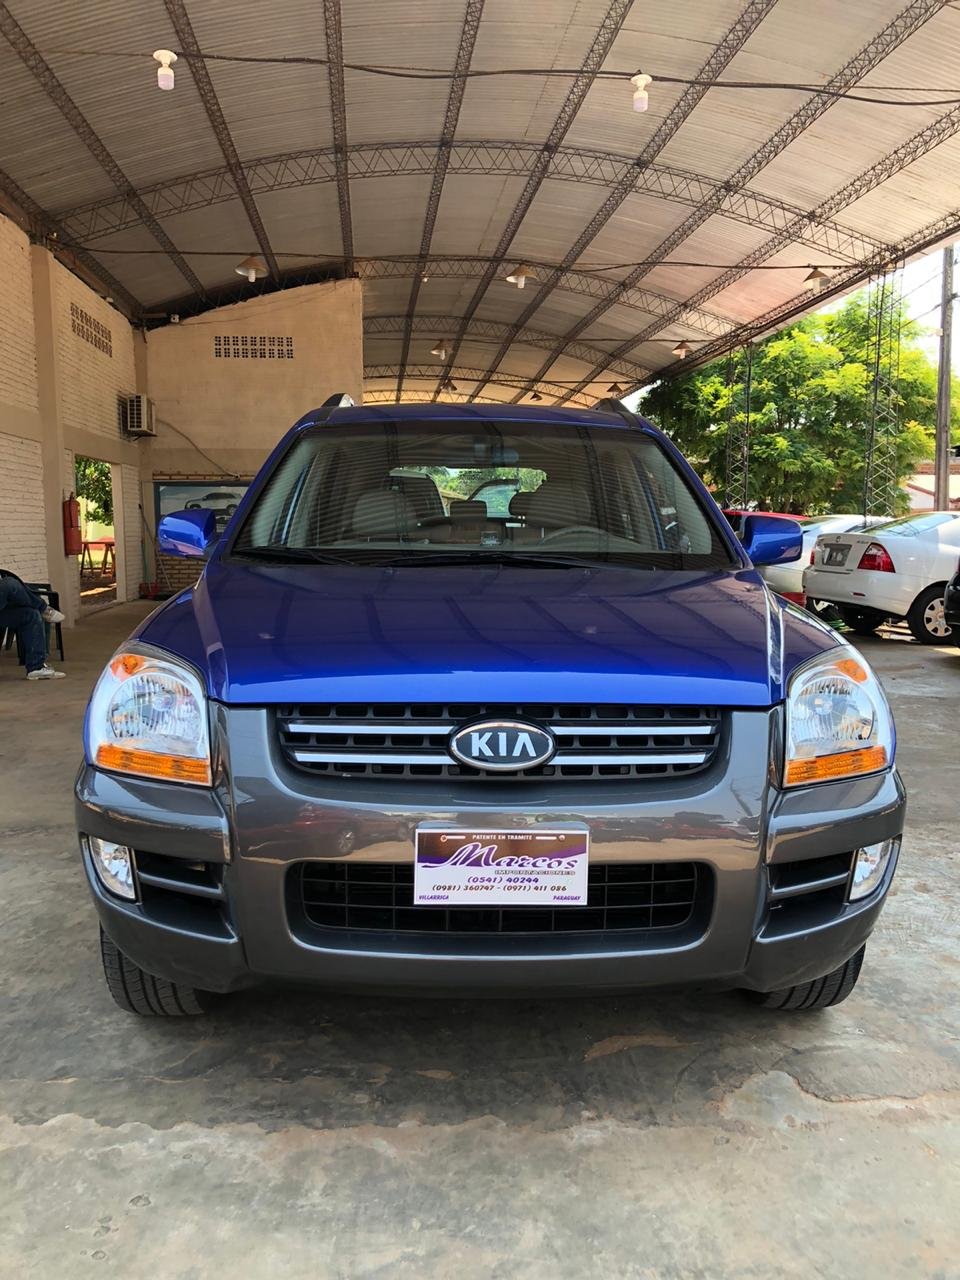 KIA SPORTAGE COLOR AZUL 2005